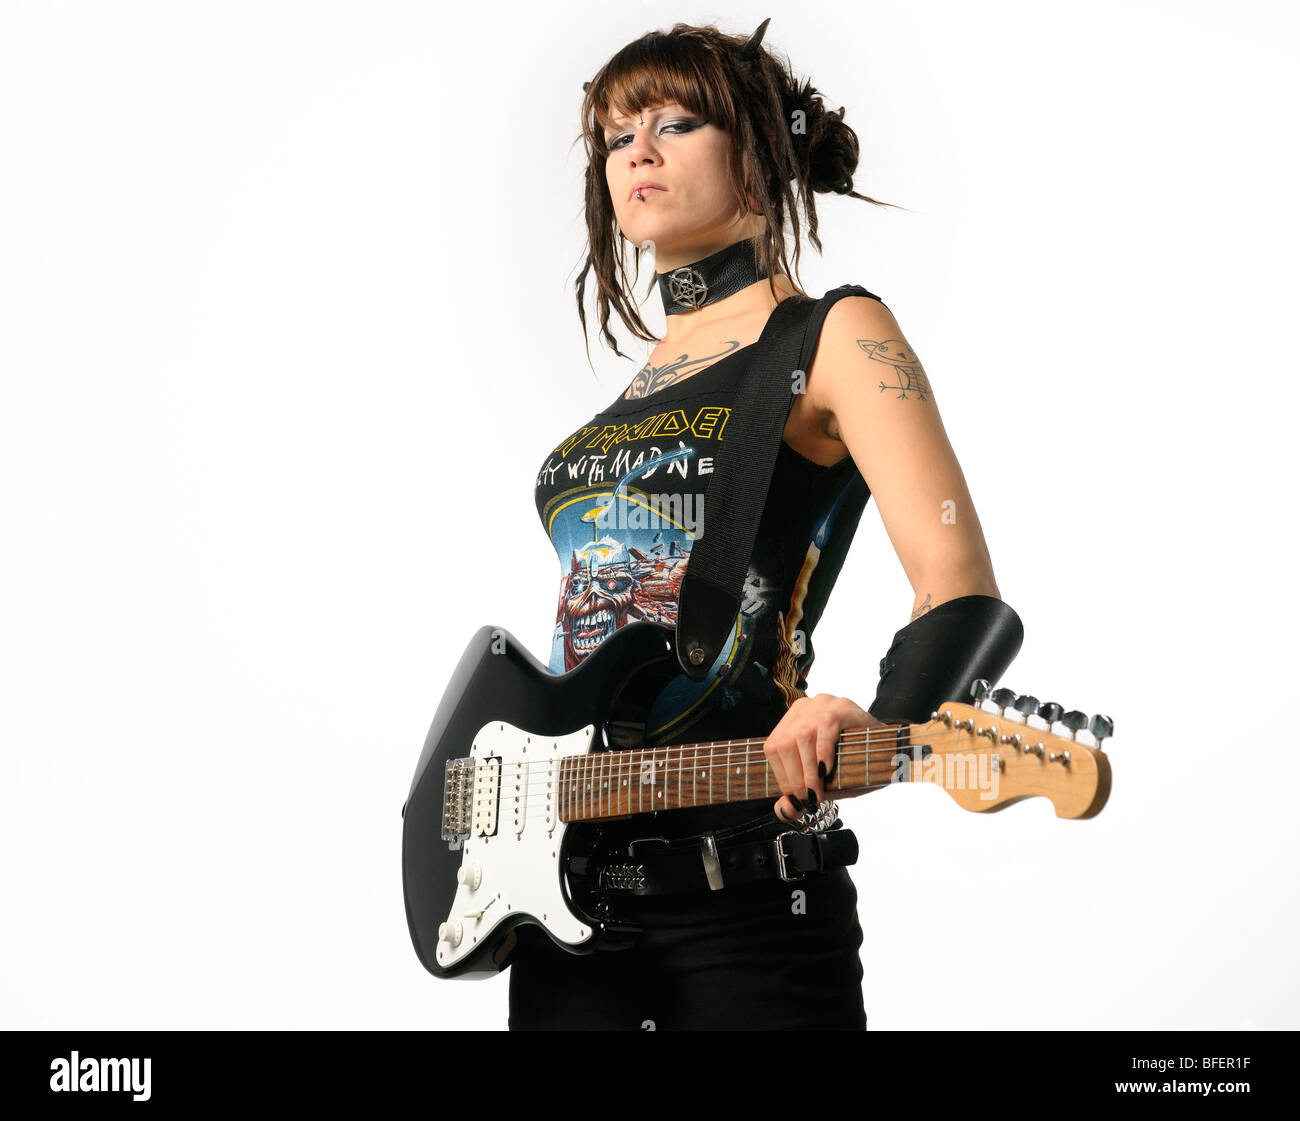 Heavy Metal chick with horns and tattoos holding a black guitar on a white background - Stock Image